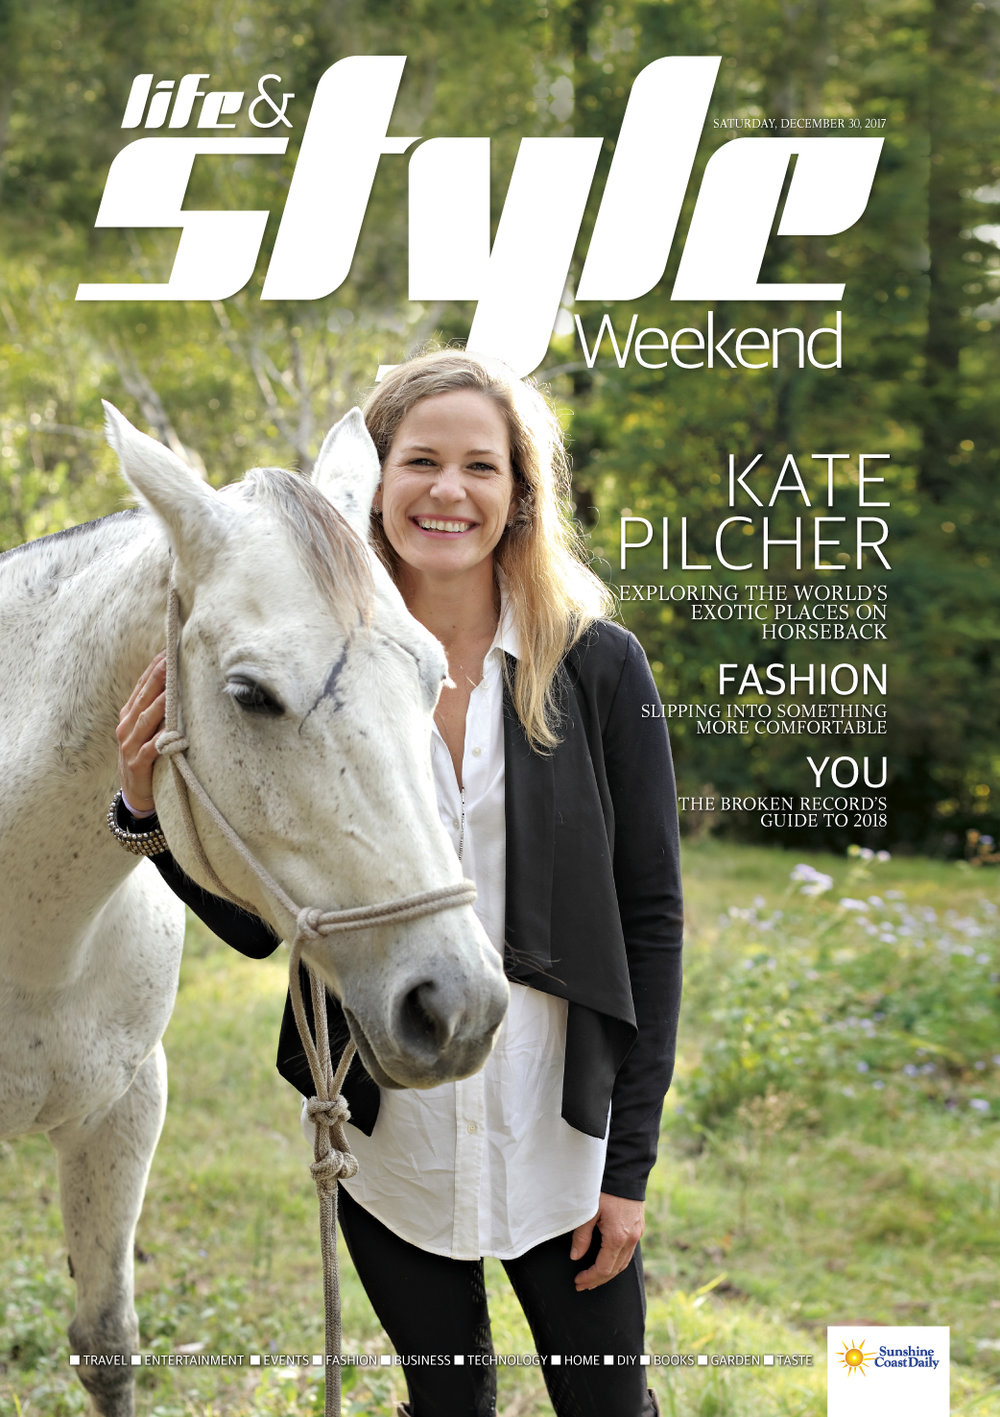 Kate Pilcher - exploring the world's exotic places on horseback